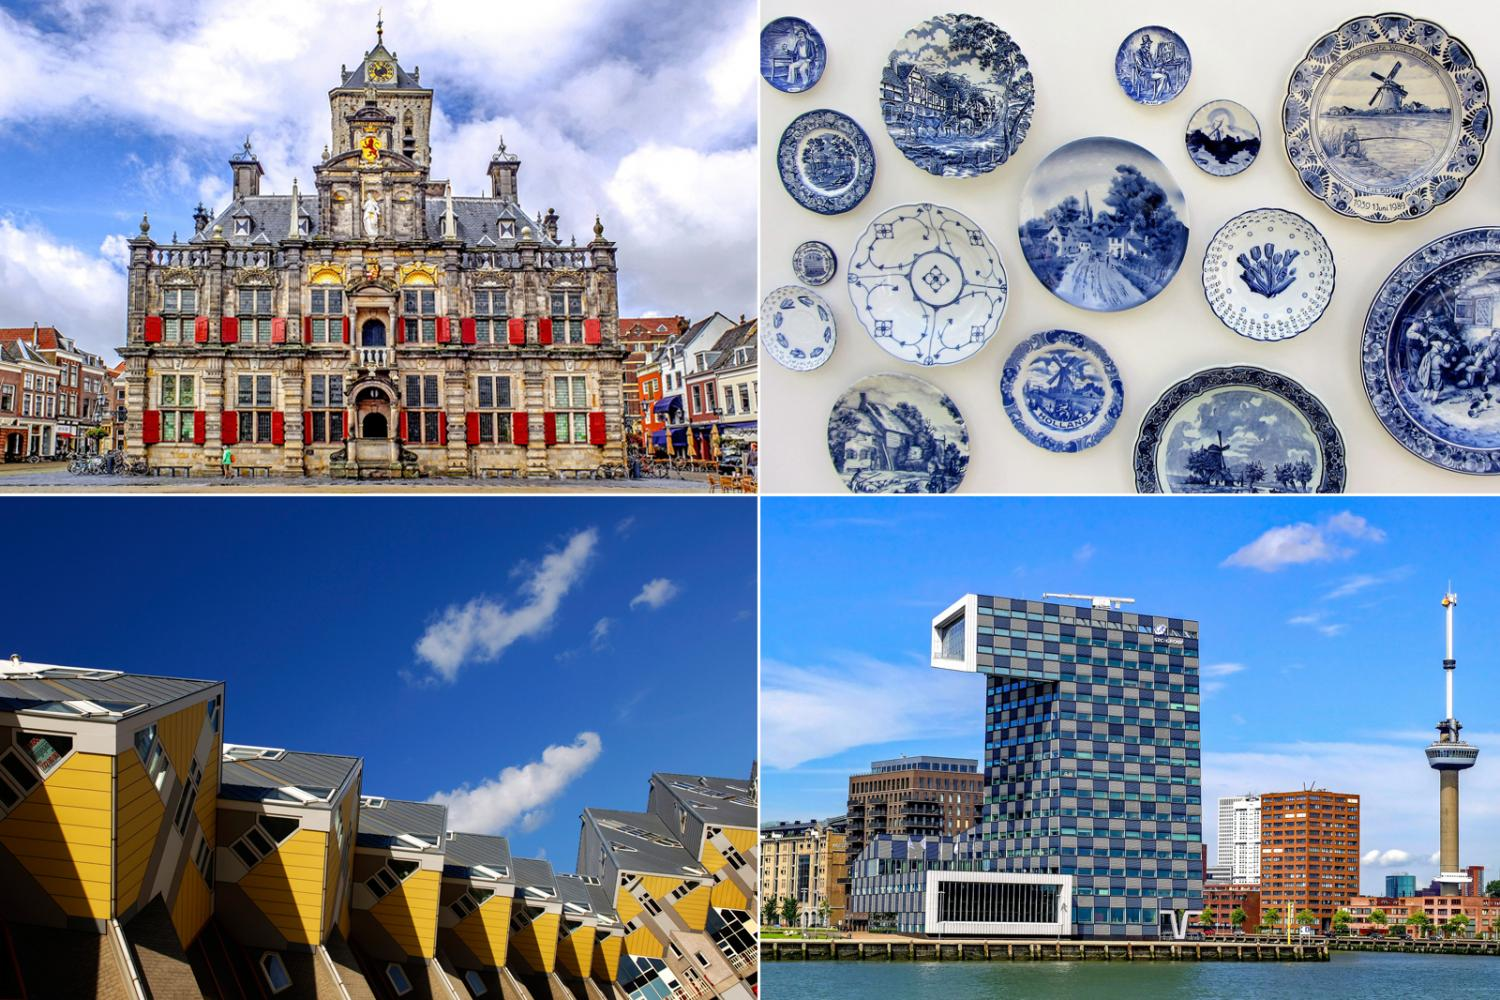 Rotterdam, Delft & The Hague small group